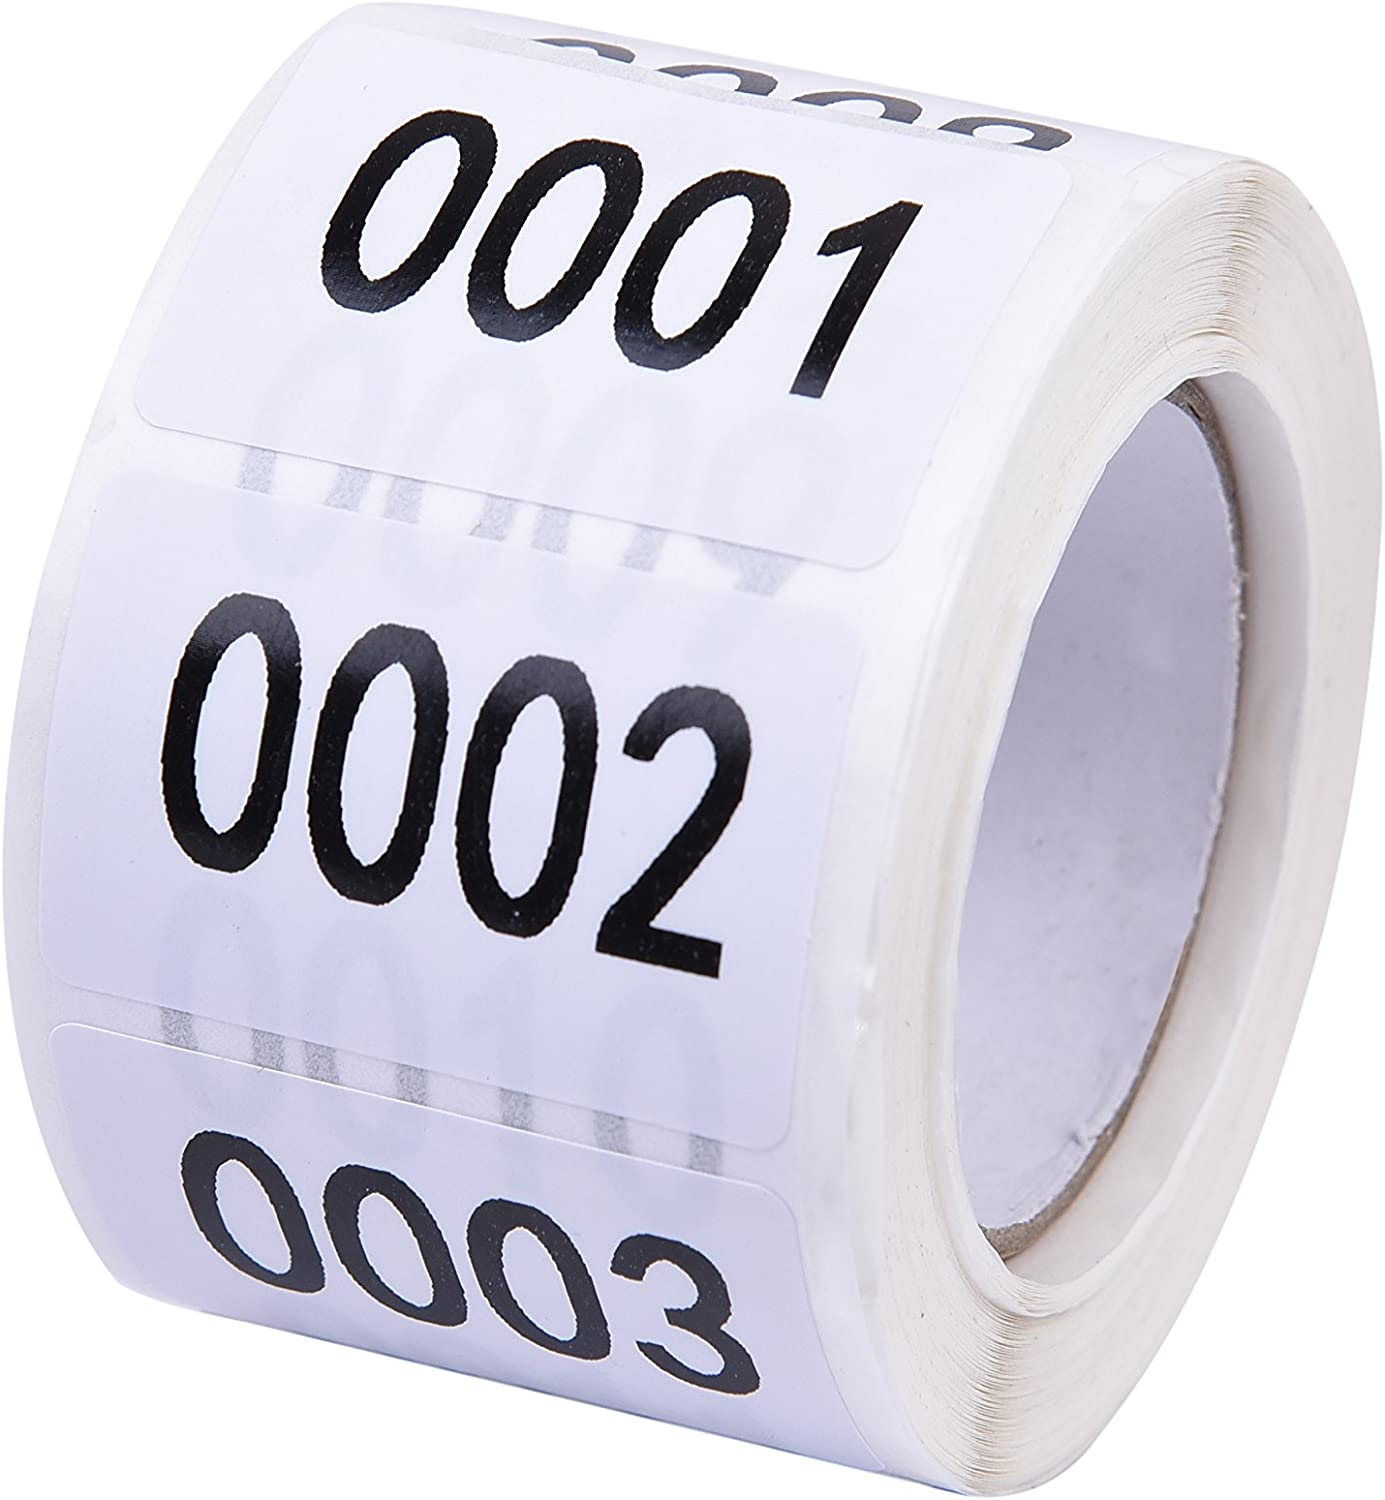 Simple Durable 1-500 Numbers Consecutive Number Labels Inventory Stickers